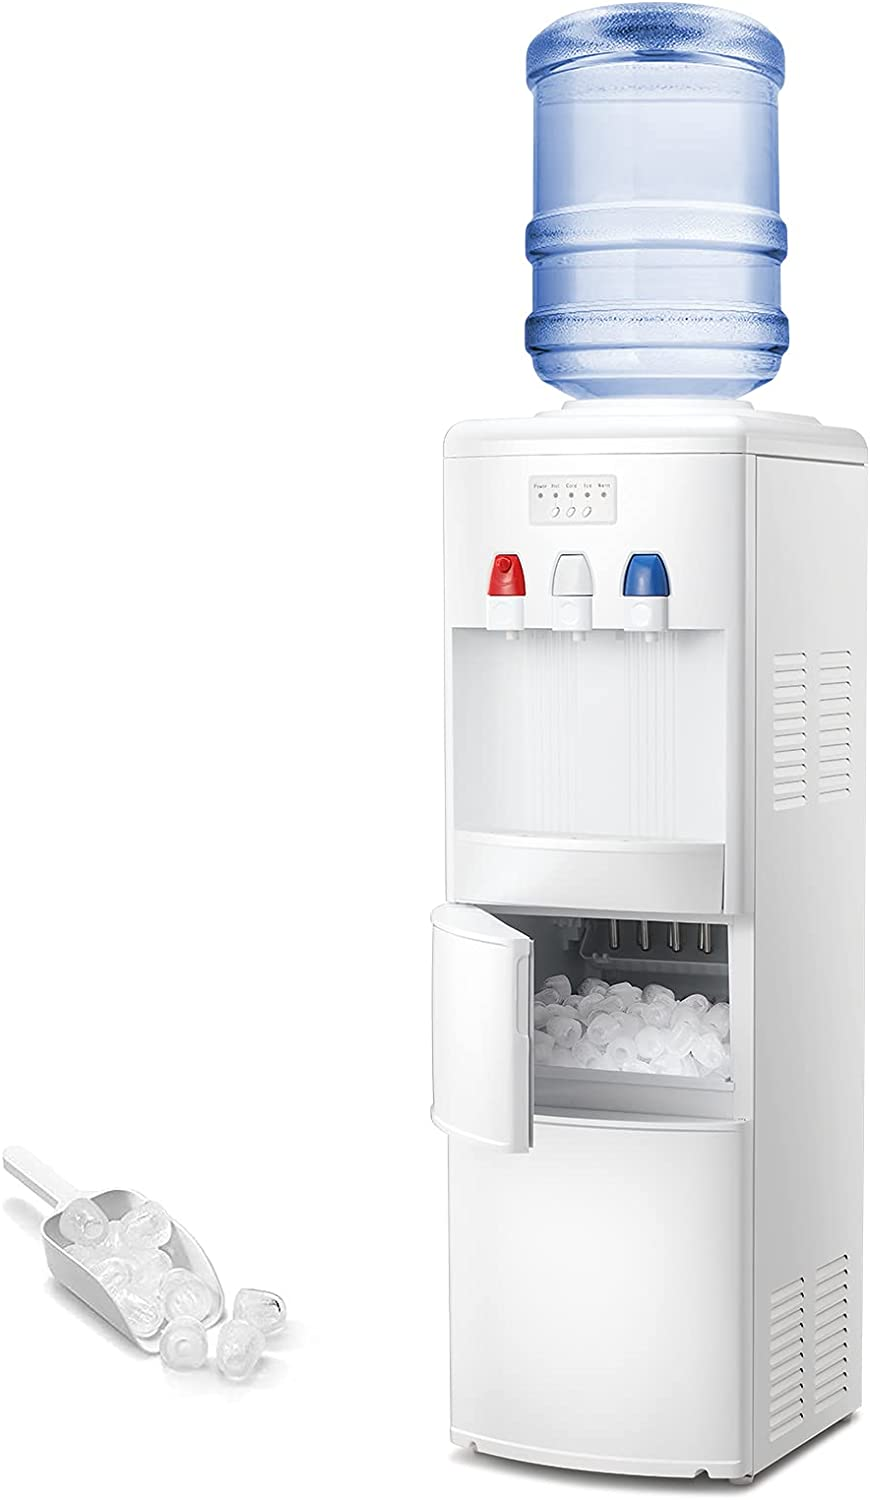 Antarctic Star Excellence 2-in-1 Water Cooler Dispenser Built-in Ice with M Sales results No. 1